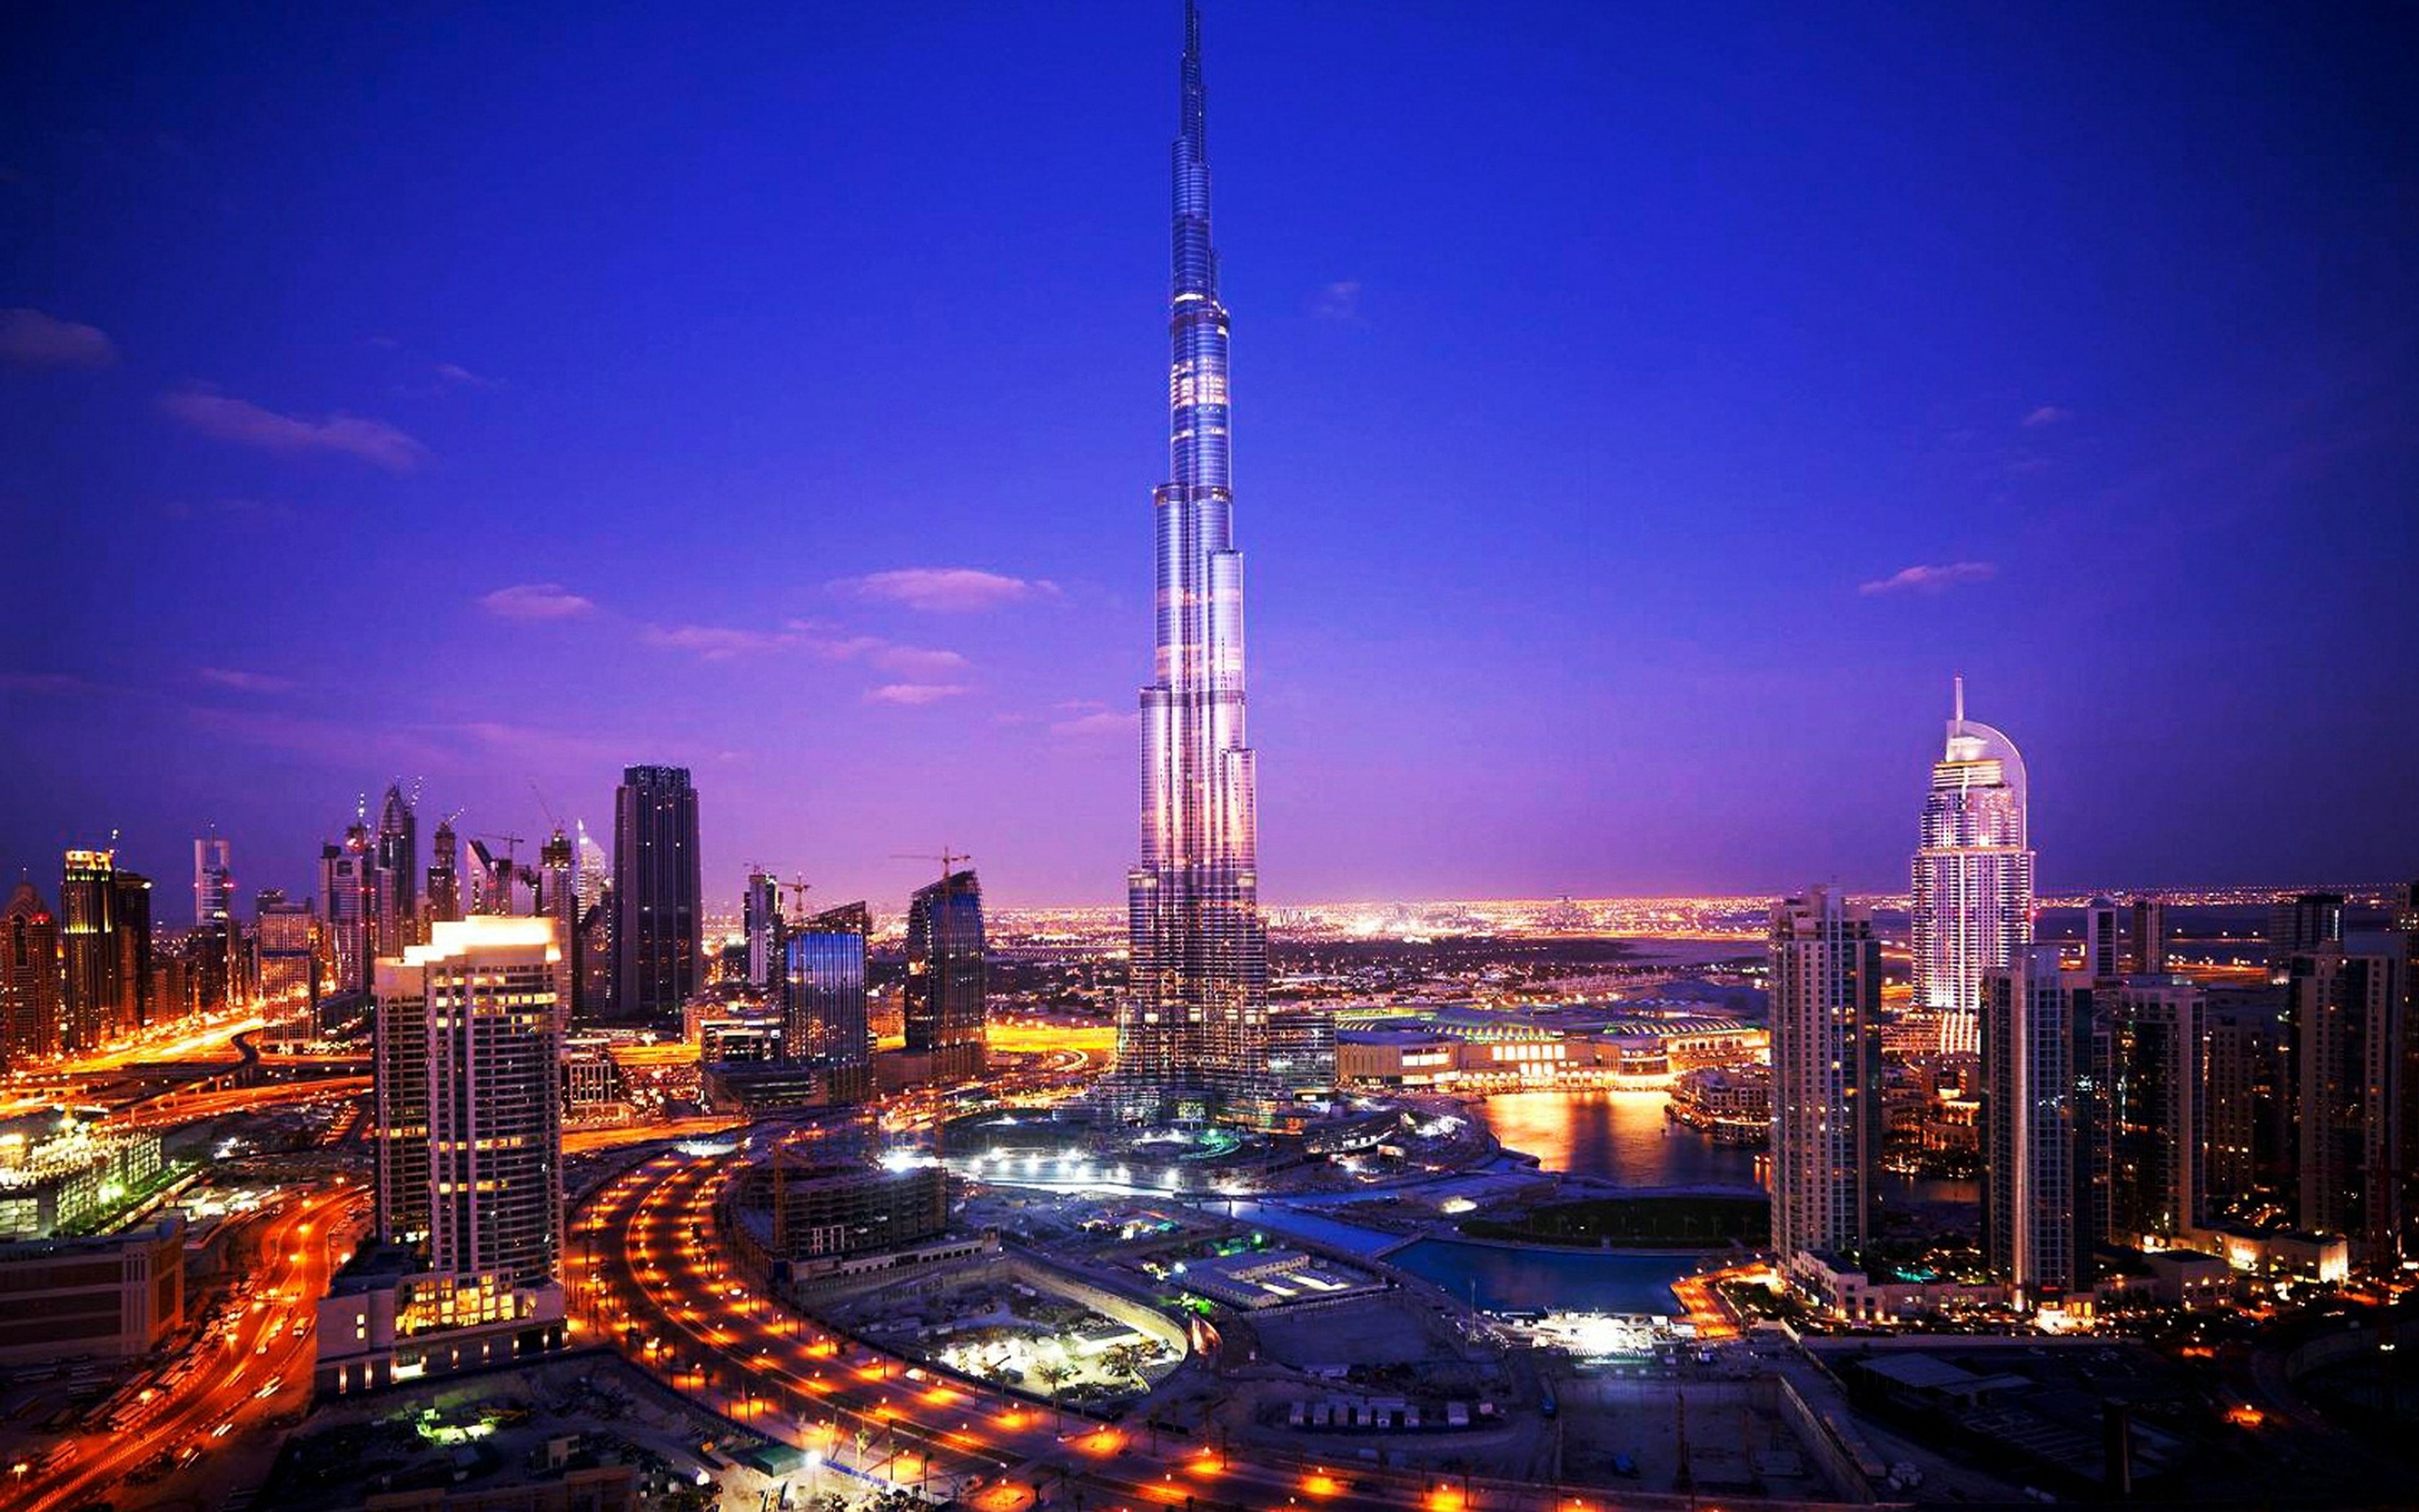 illuminated, city, architecture, building exterior, cityscape, built structure, night, tall - high, tower, skyscraper, capital cities, sky, city life, travel destinations, high angle view, modern, blue, transportation, travel, dusk